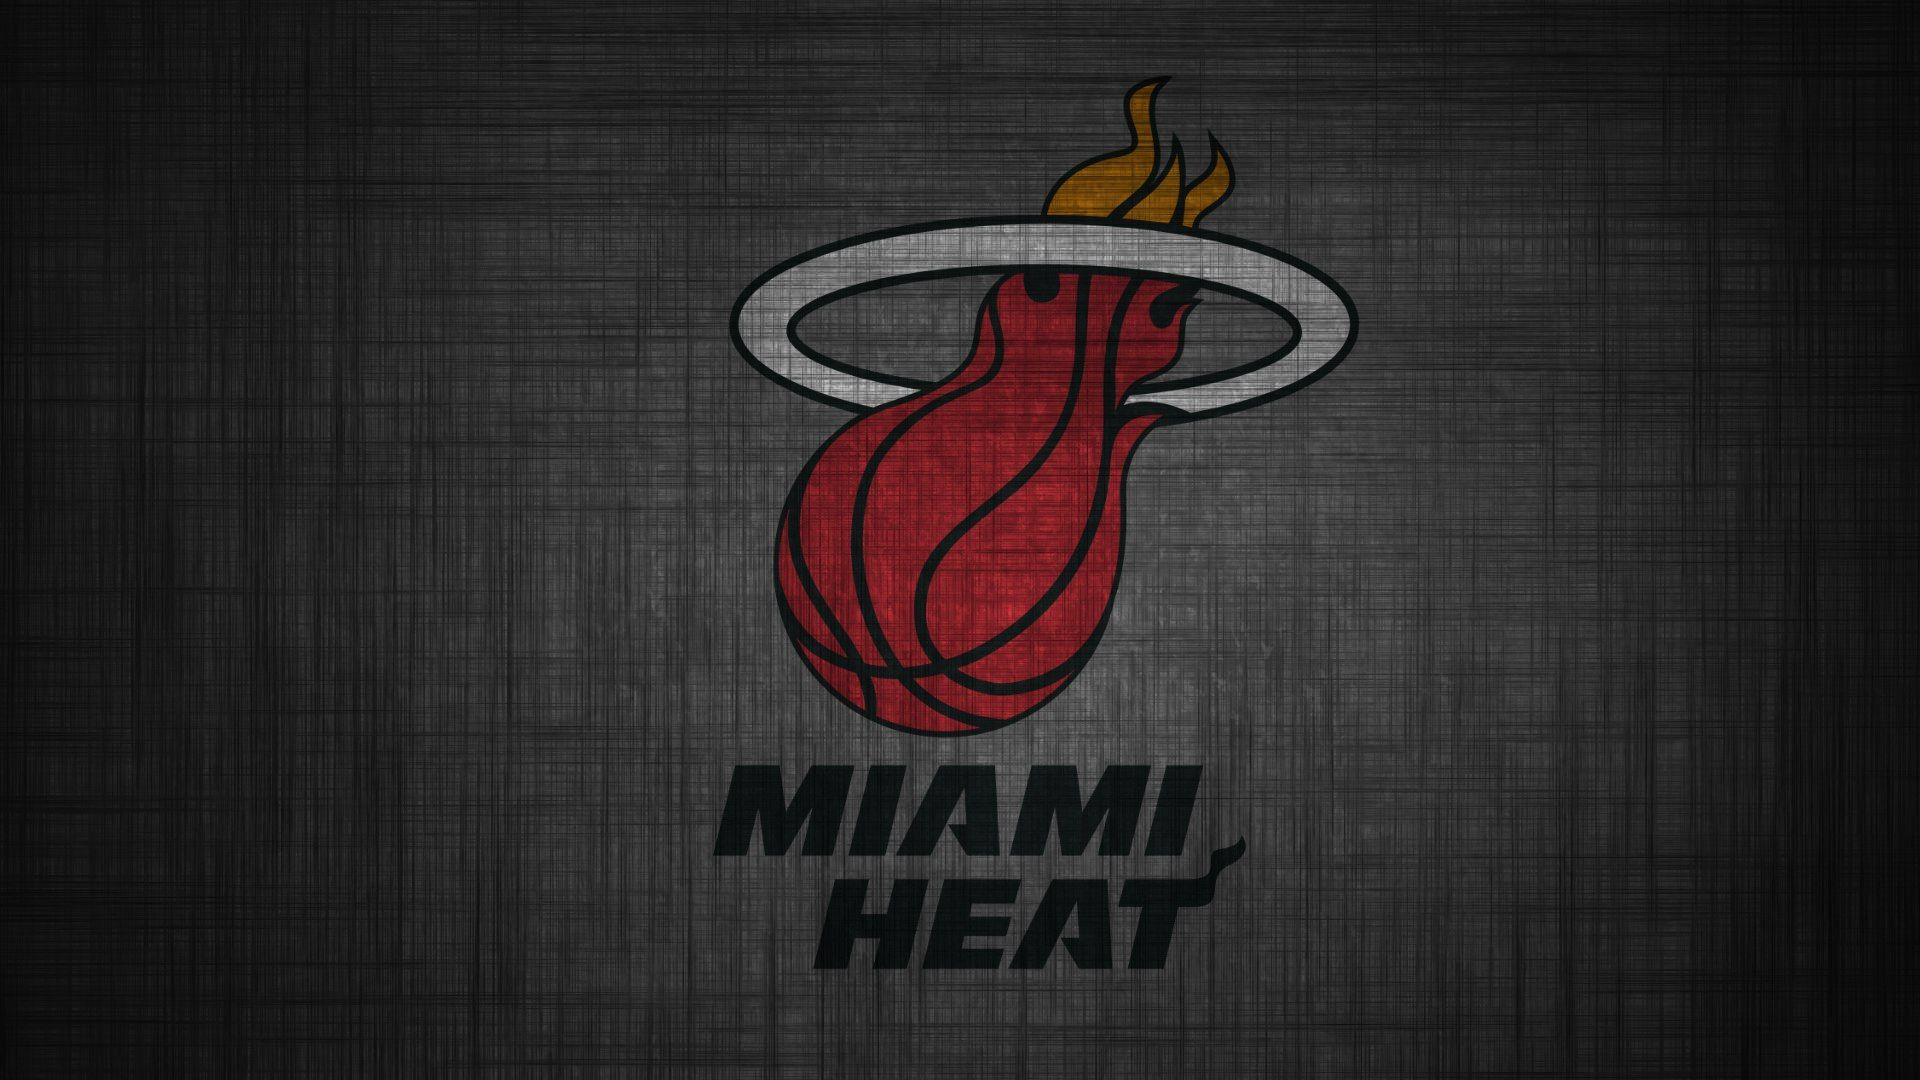 47 New Miami Heat Wallpapers